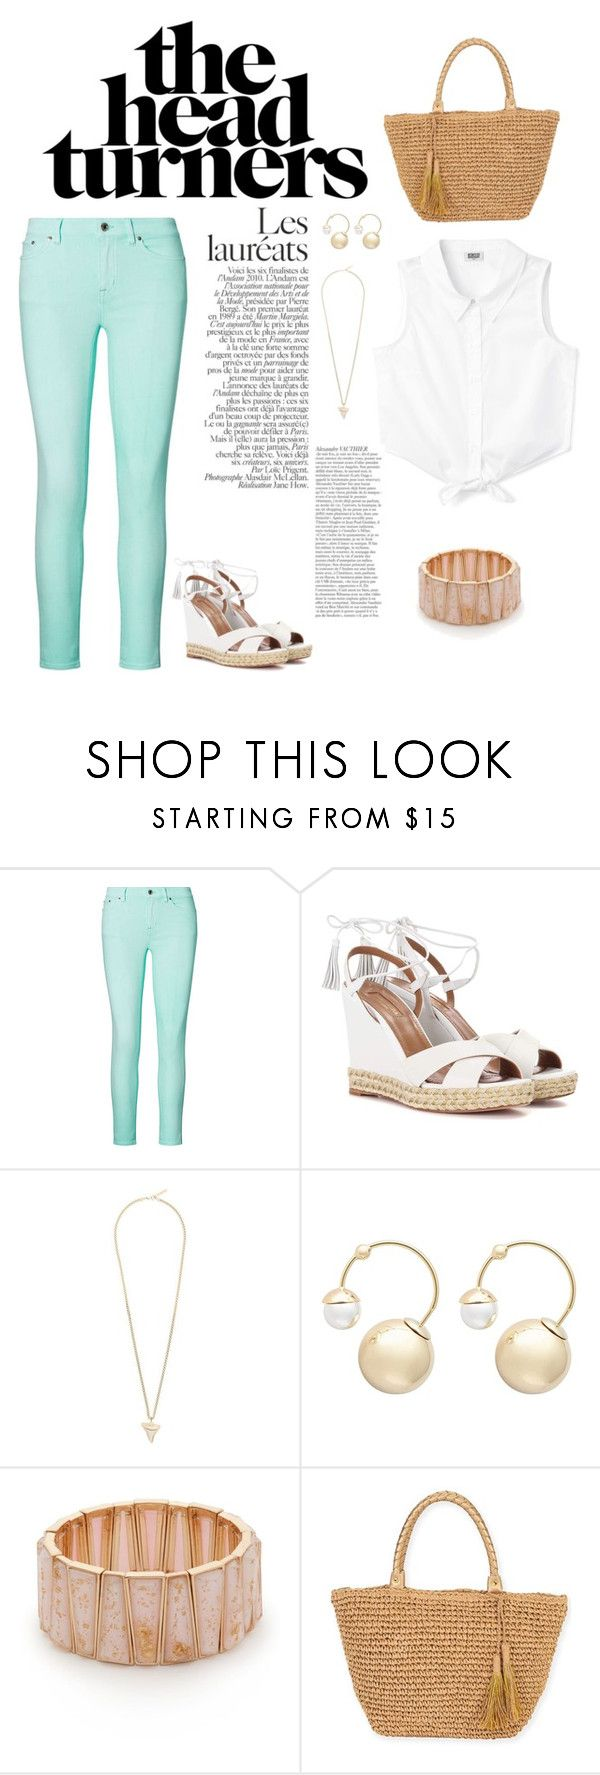 """Spring Look"" by stileclassico ❤ liked on Polyvore featuring Ralph Lauren, Aquazzura, Givenchy, Witchery, New Directions and Sun N' Sand"